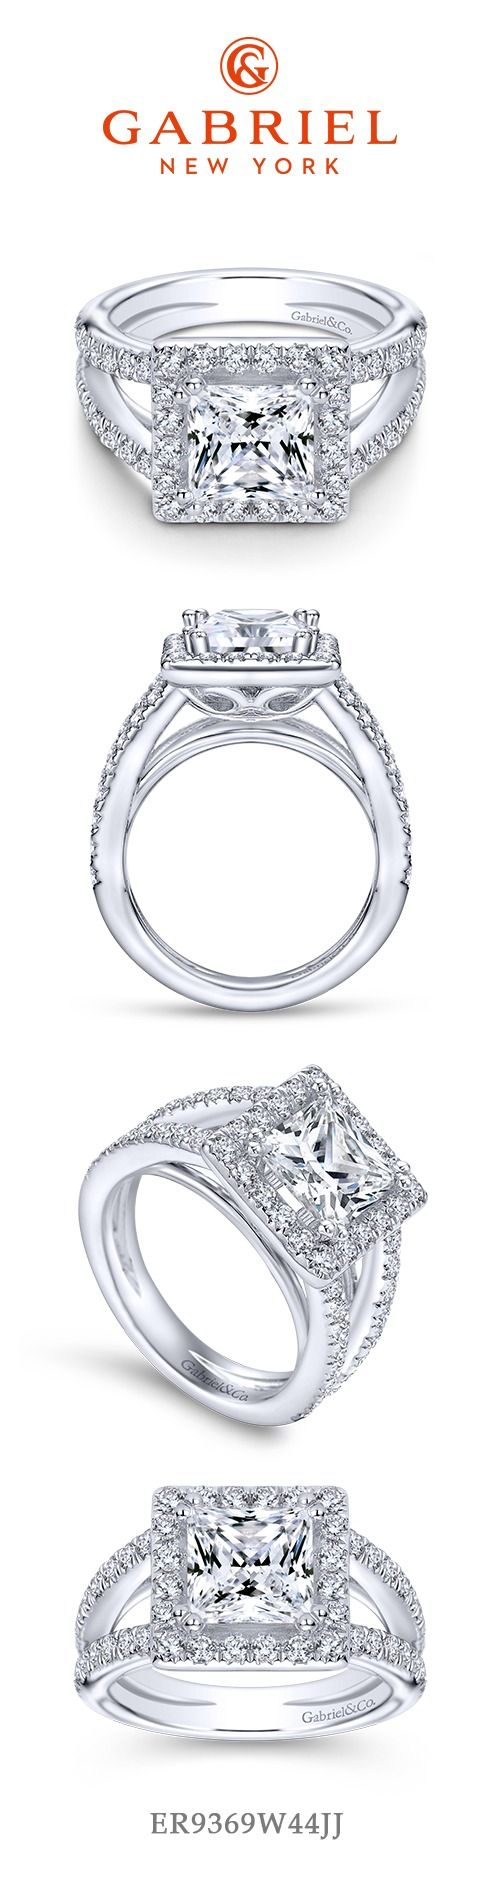 Gabriel - 14k White Gold Princess Cut Halo Engagement Ring with  a split shank band. Find more princess engagement rings here -> https://www.gabrielny.com/engagement-rings/princess-cut-engagement-rings